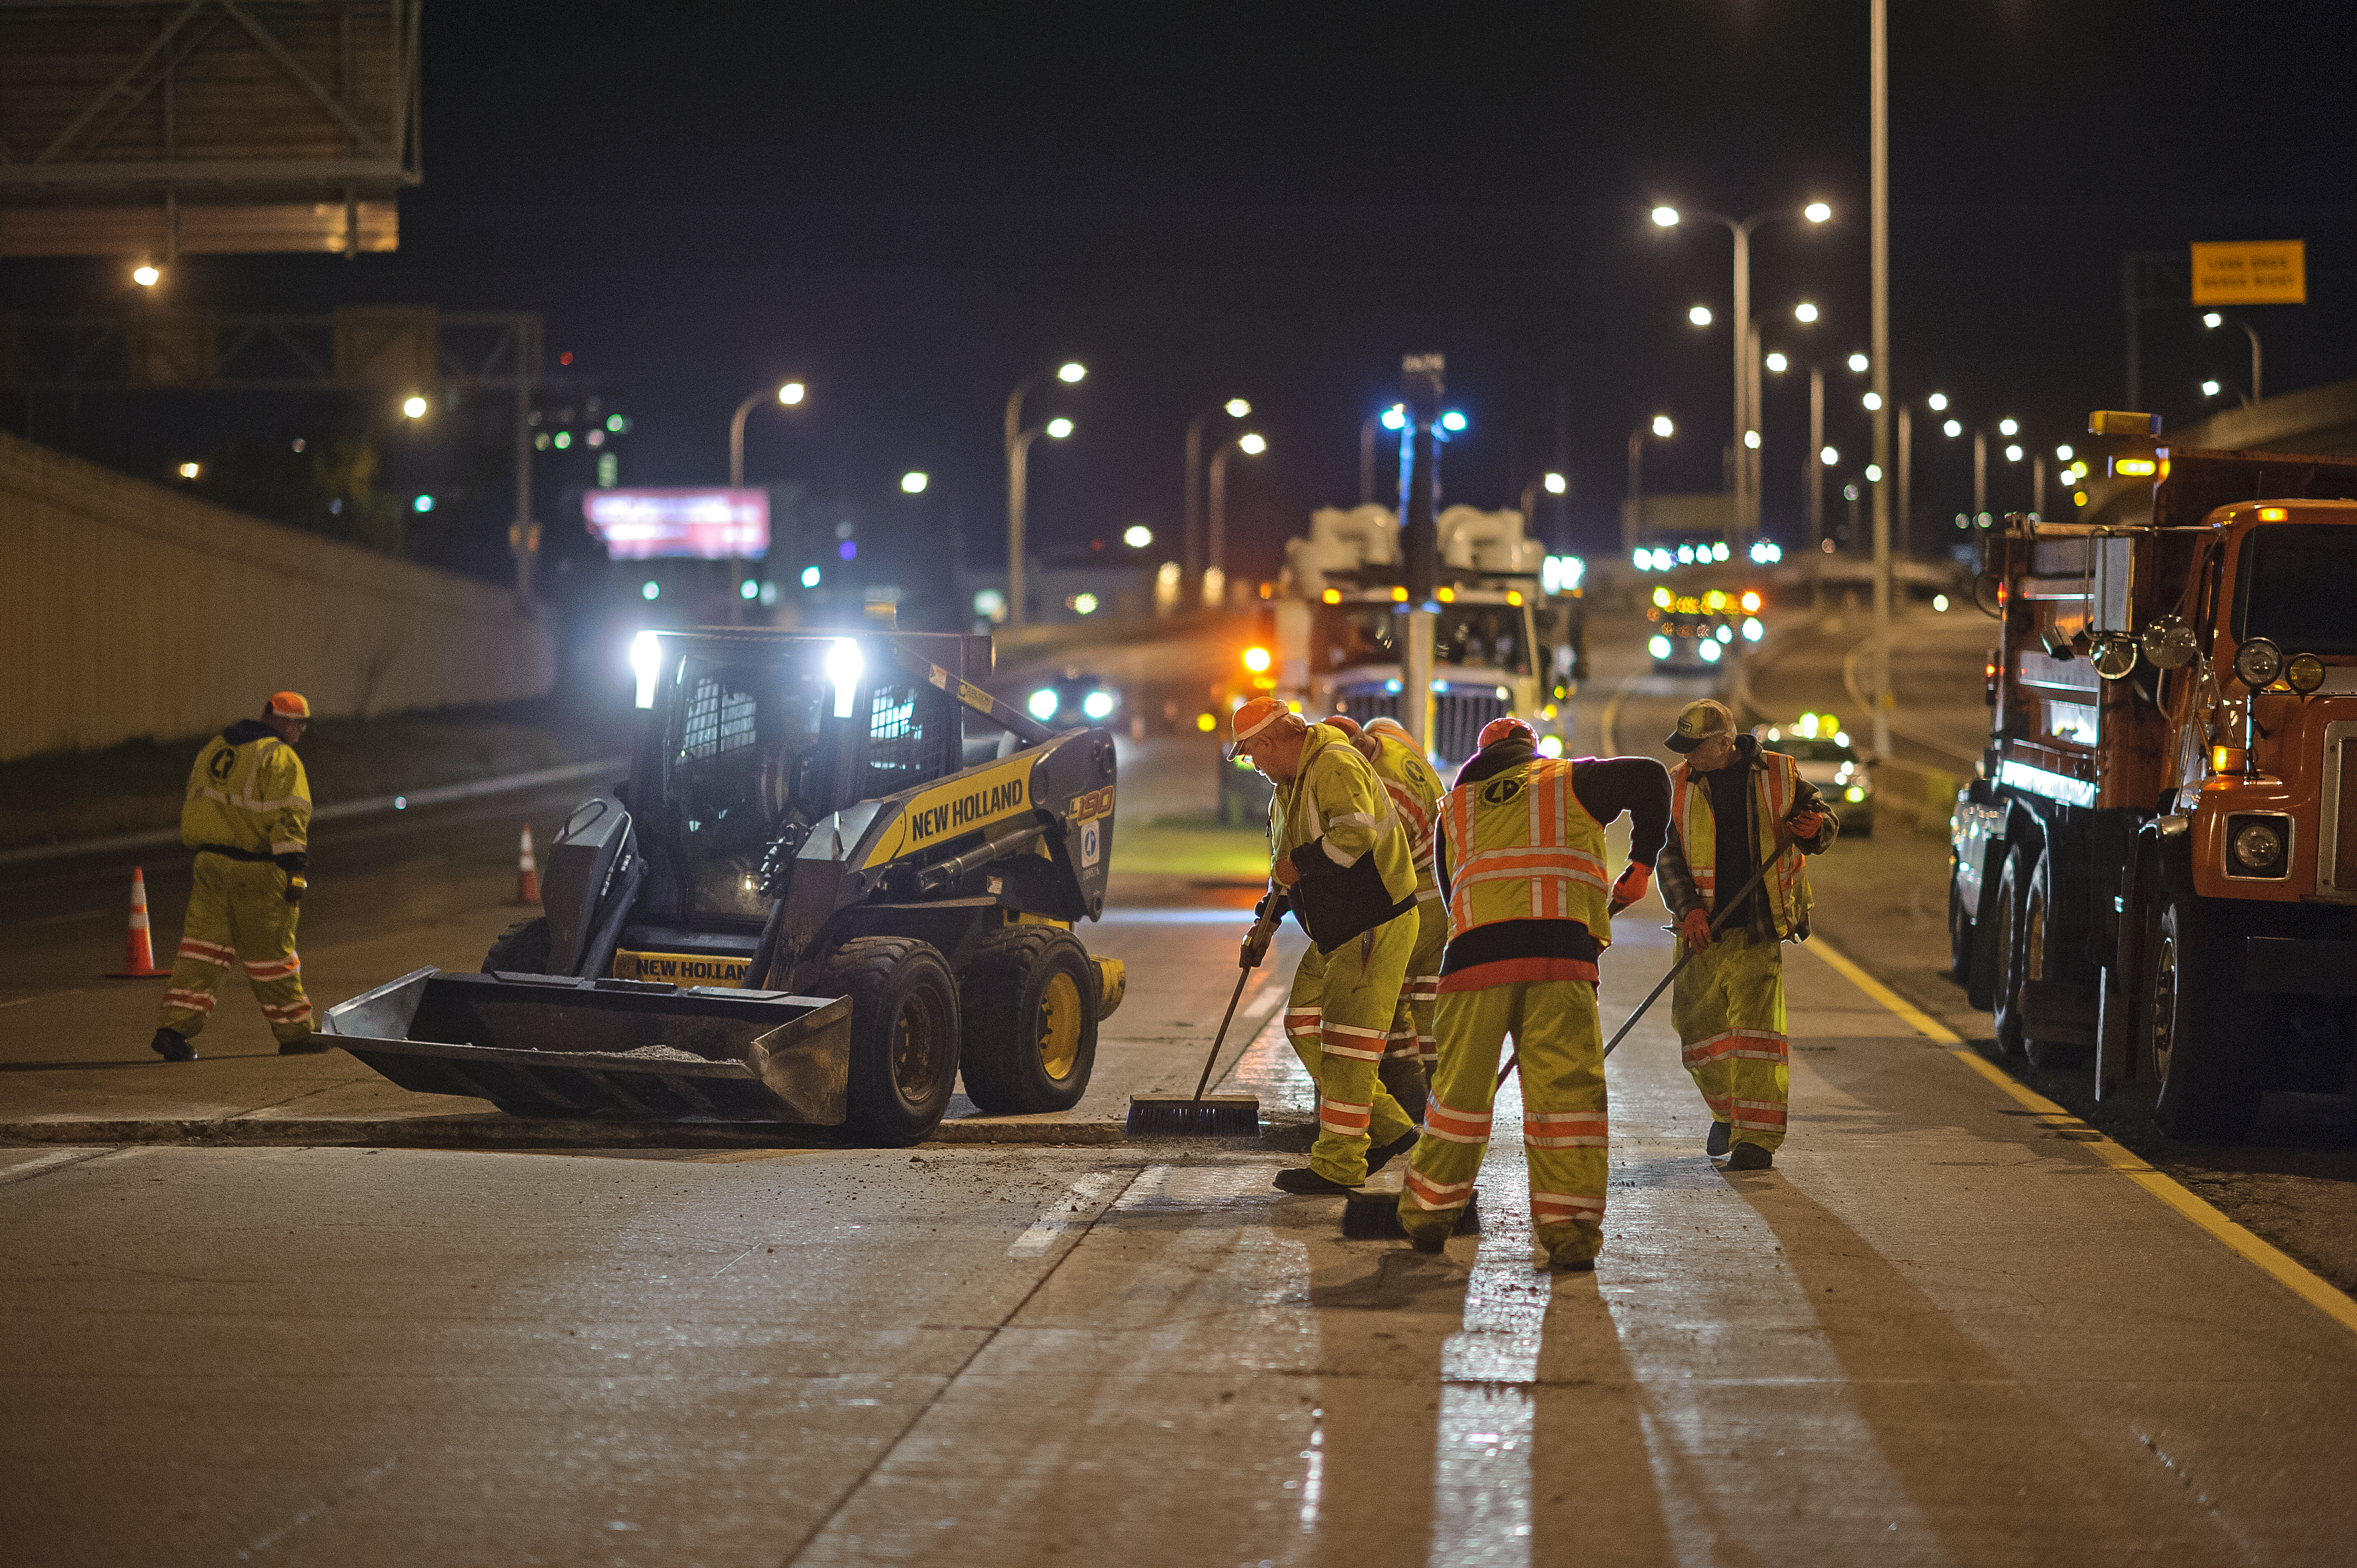 A nighttime view of workers and heavy equipment at a road construction site